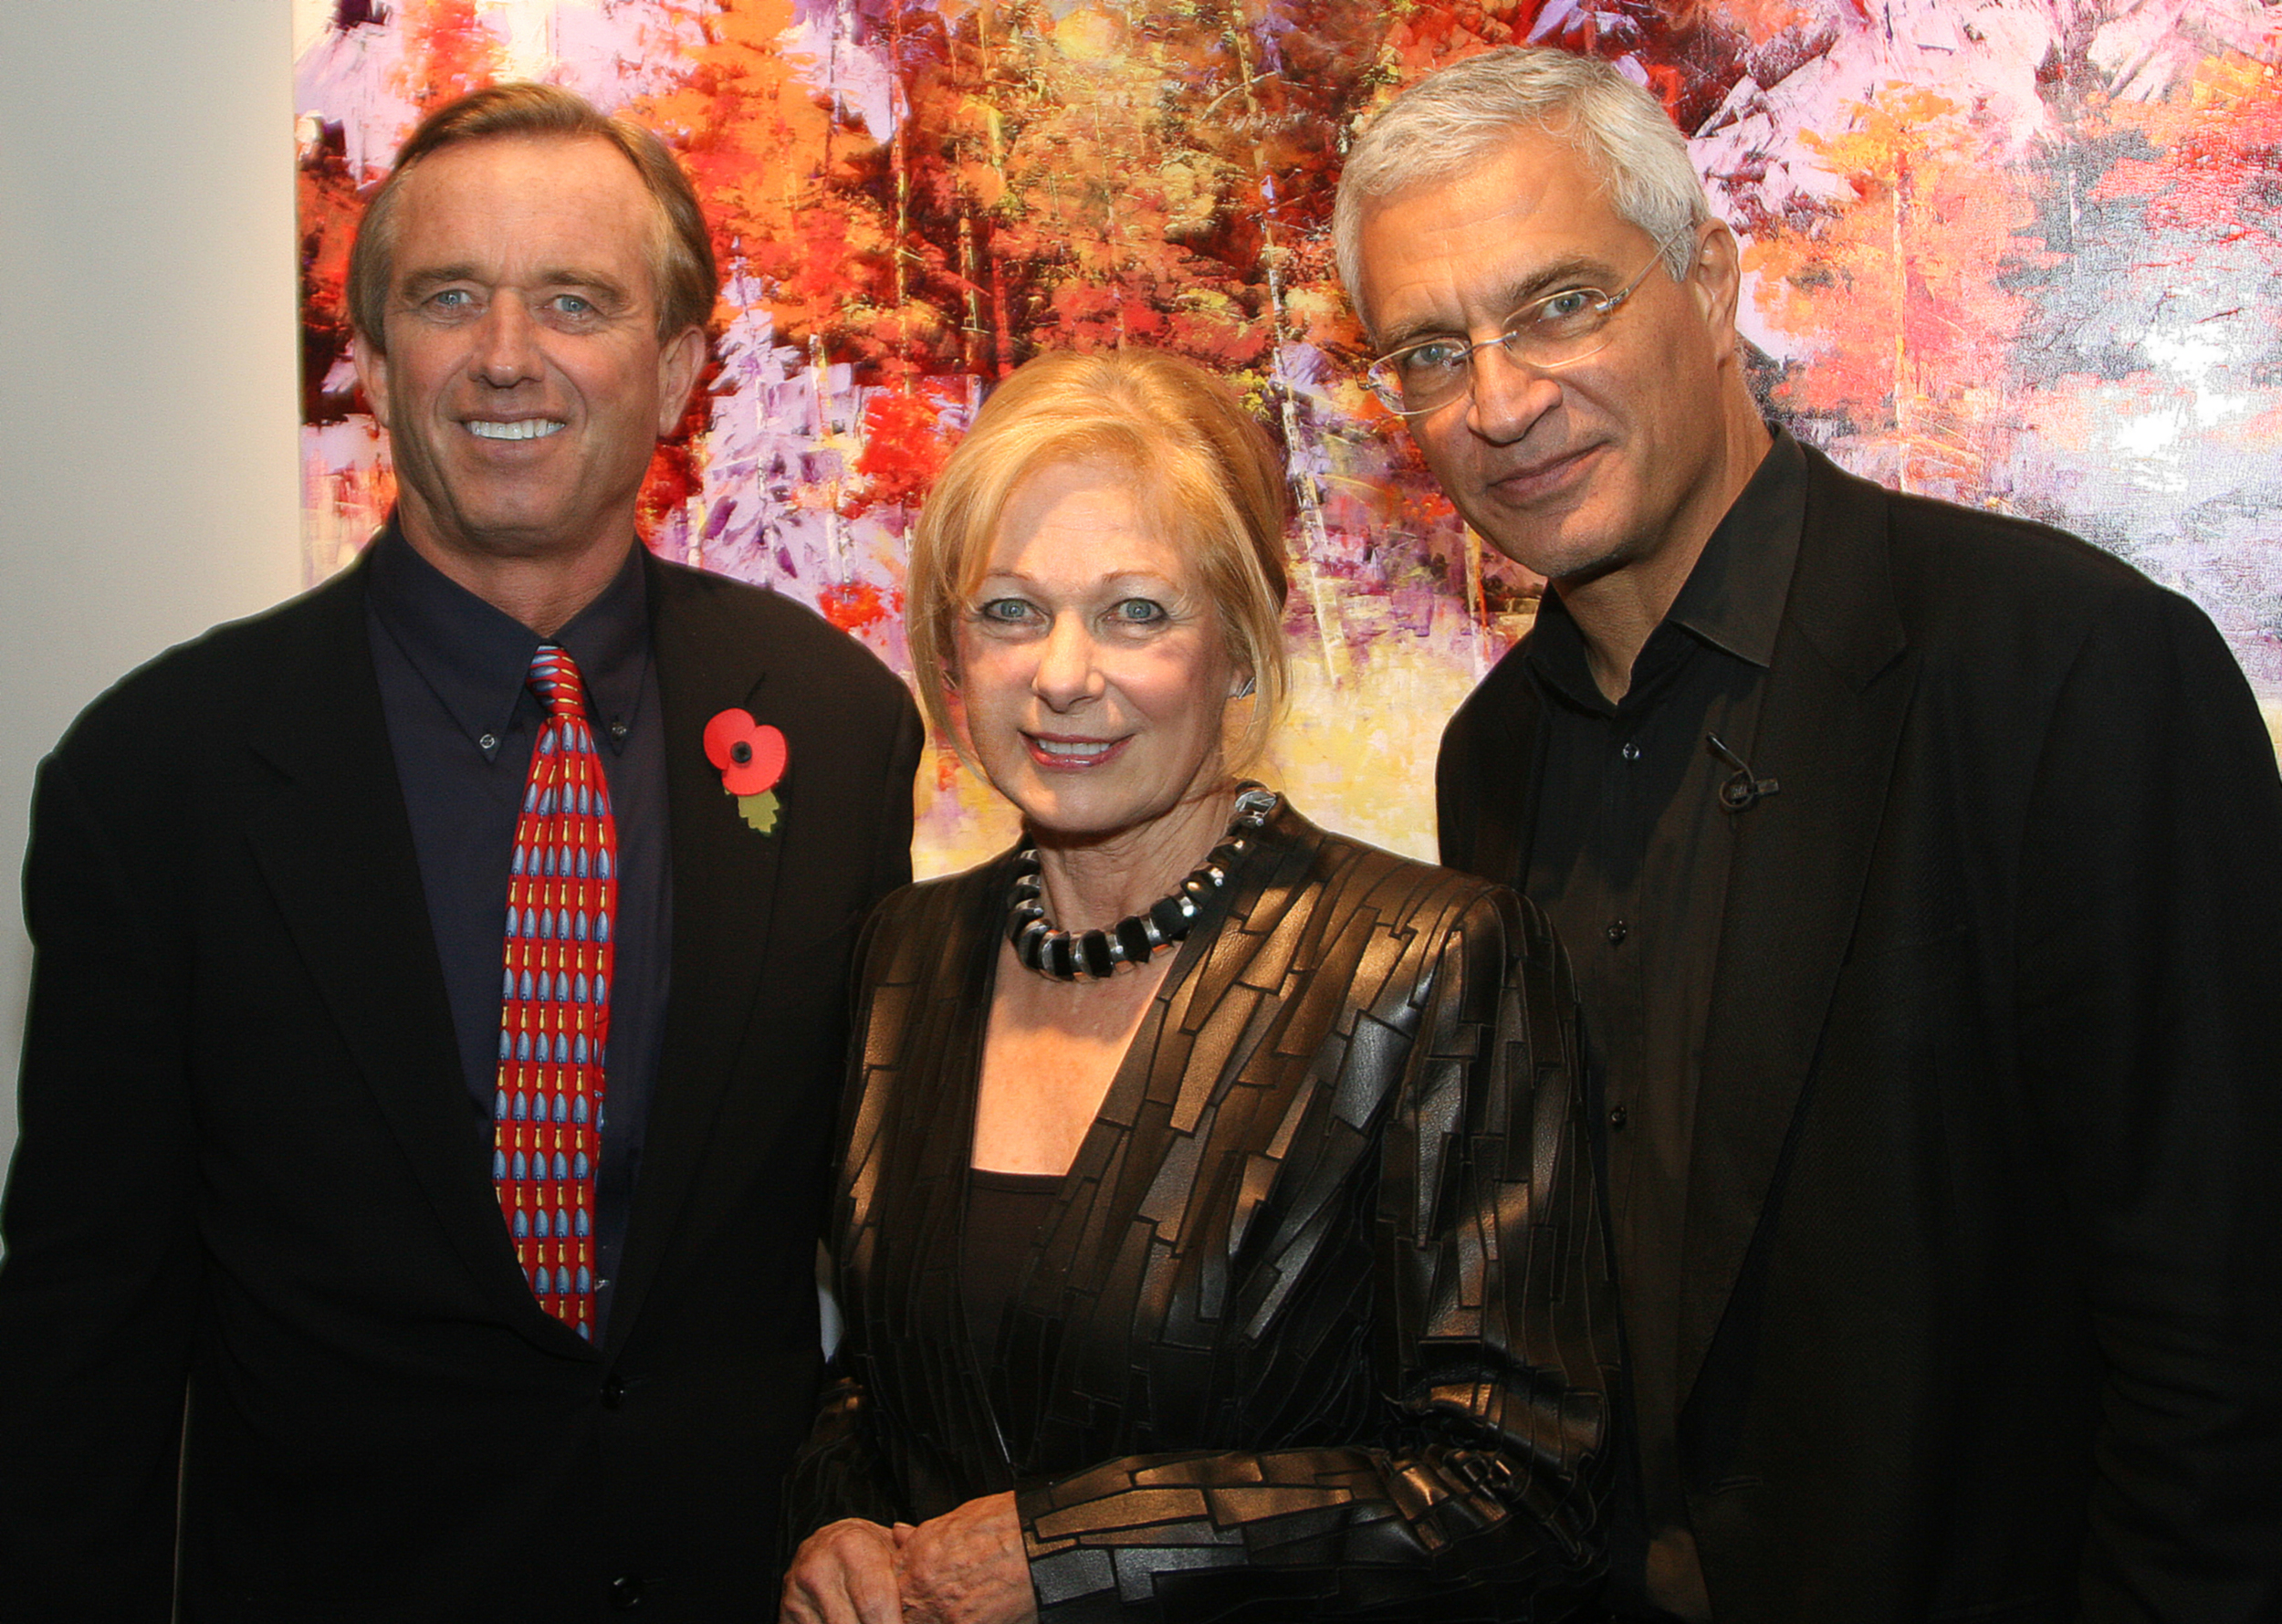 Robert F. Kennedy, Jr. and Louie Psihoyos with Susan